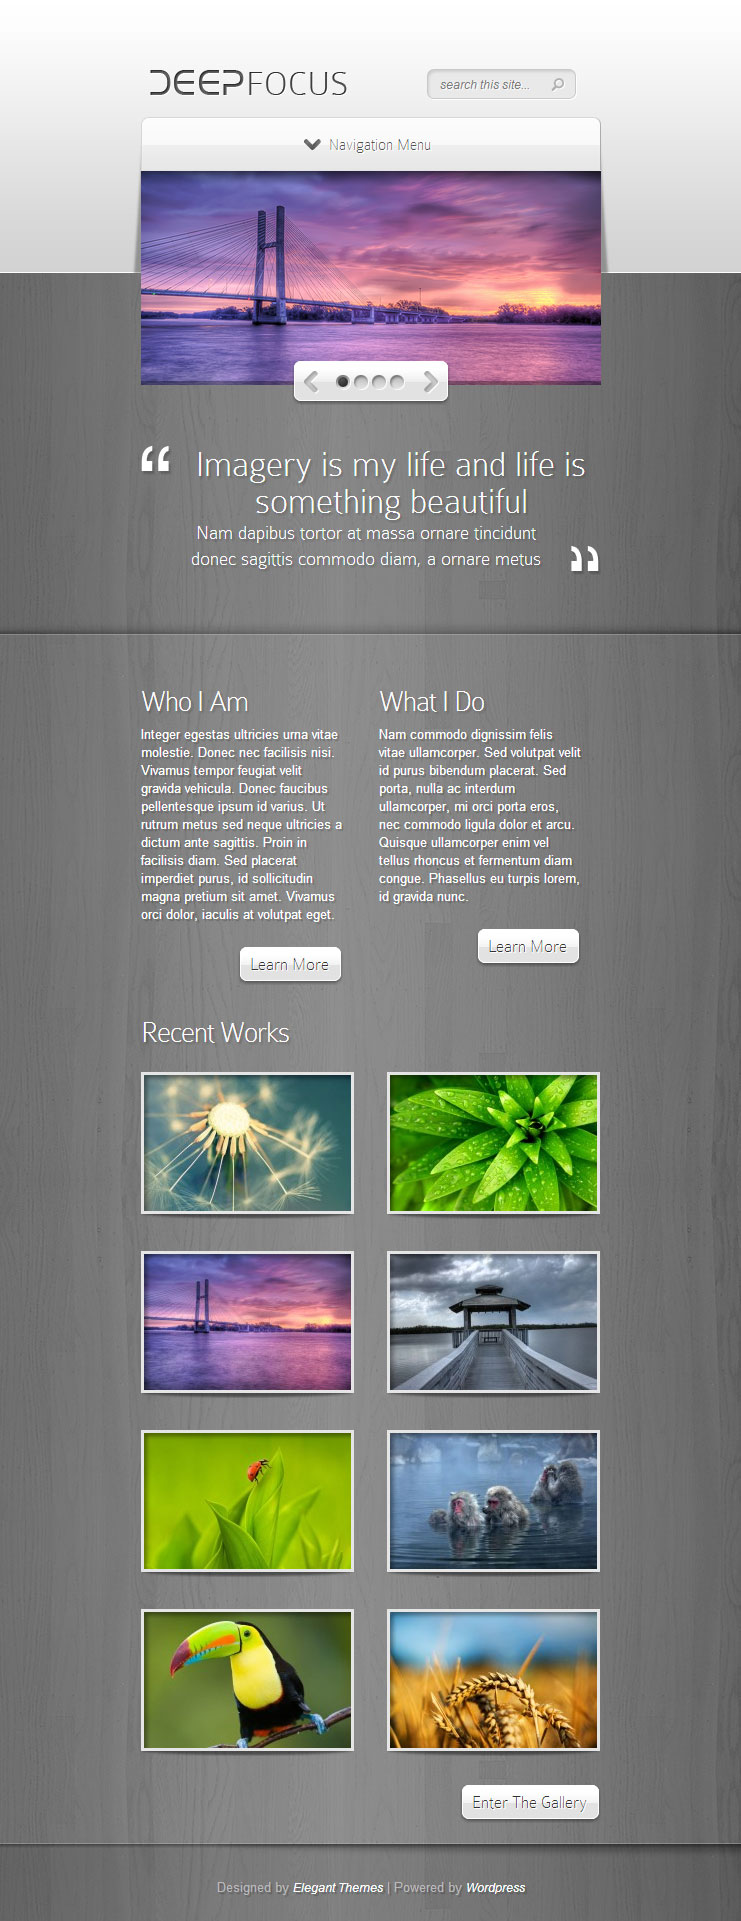 deepfocus-wordpress-responsive-theme